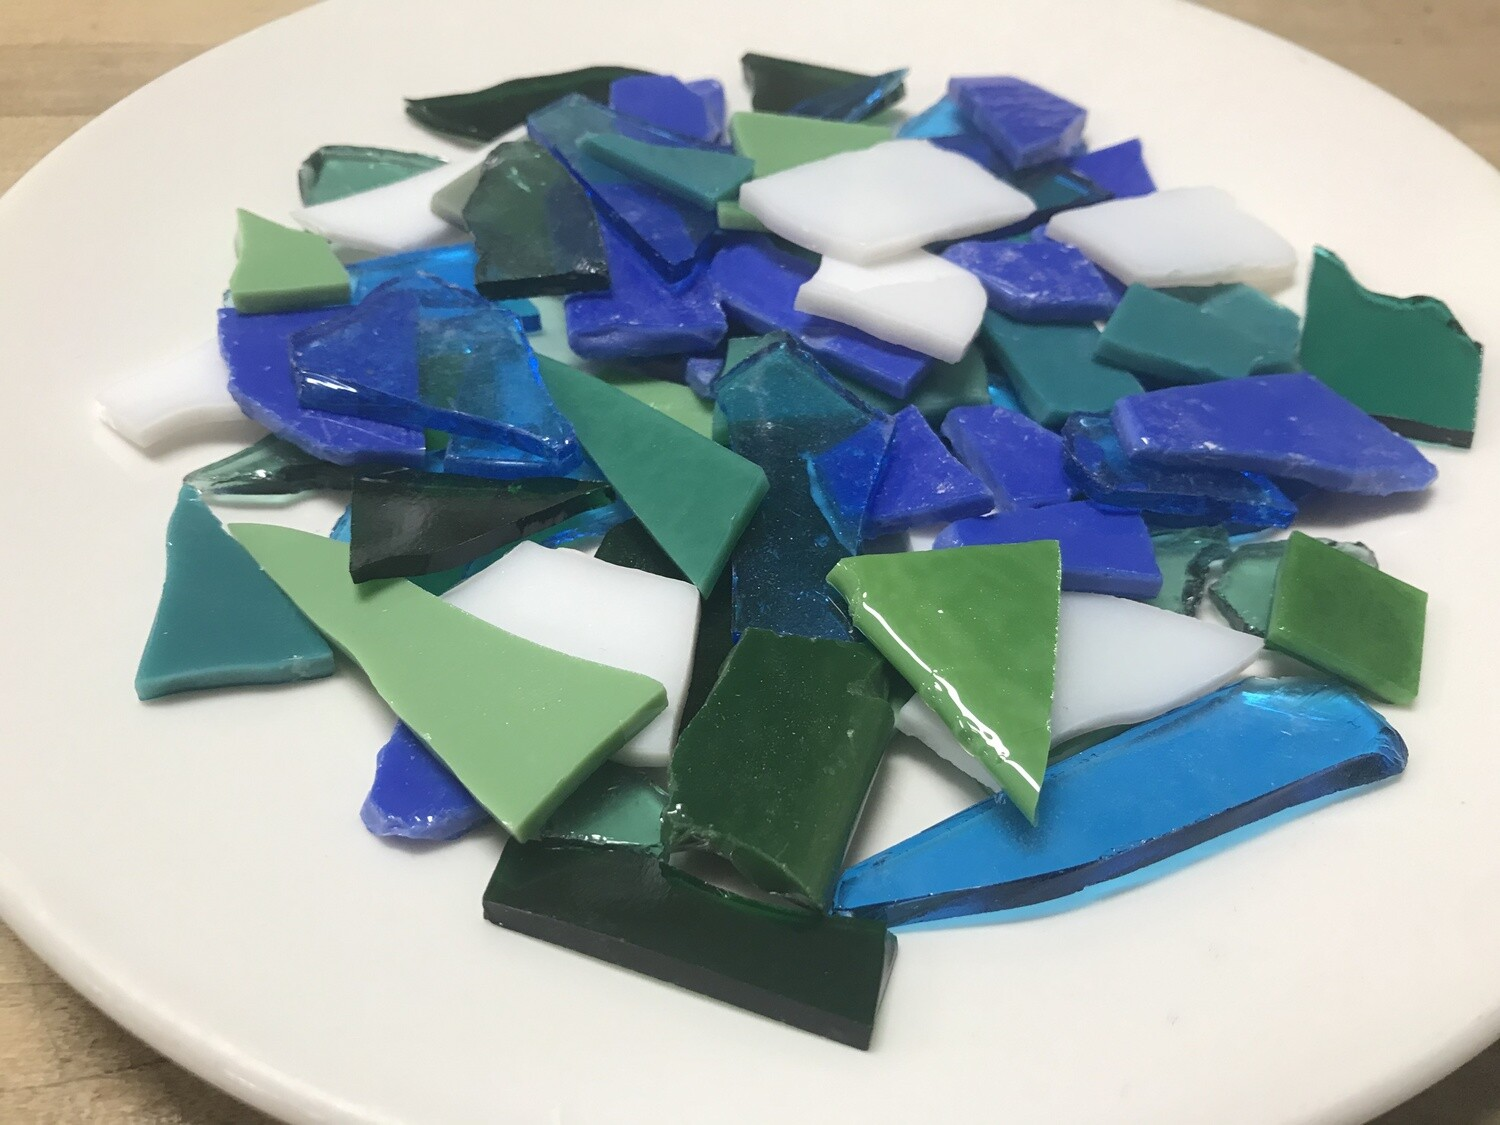 Extra Fusible Glass, Seaside Mix